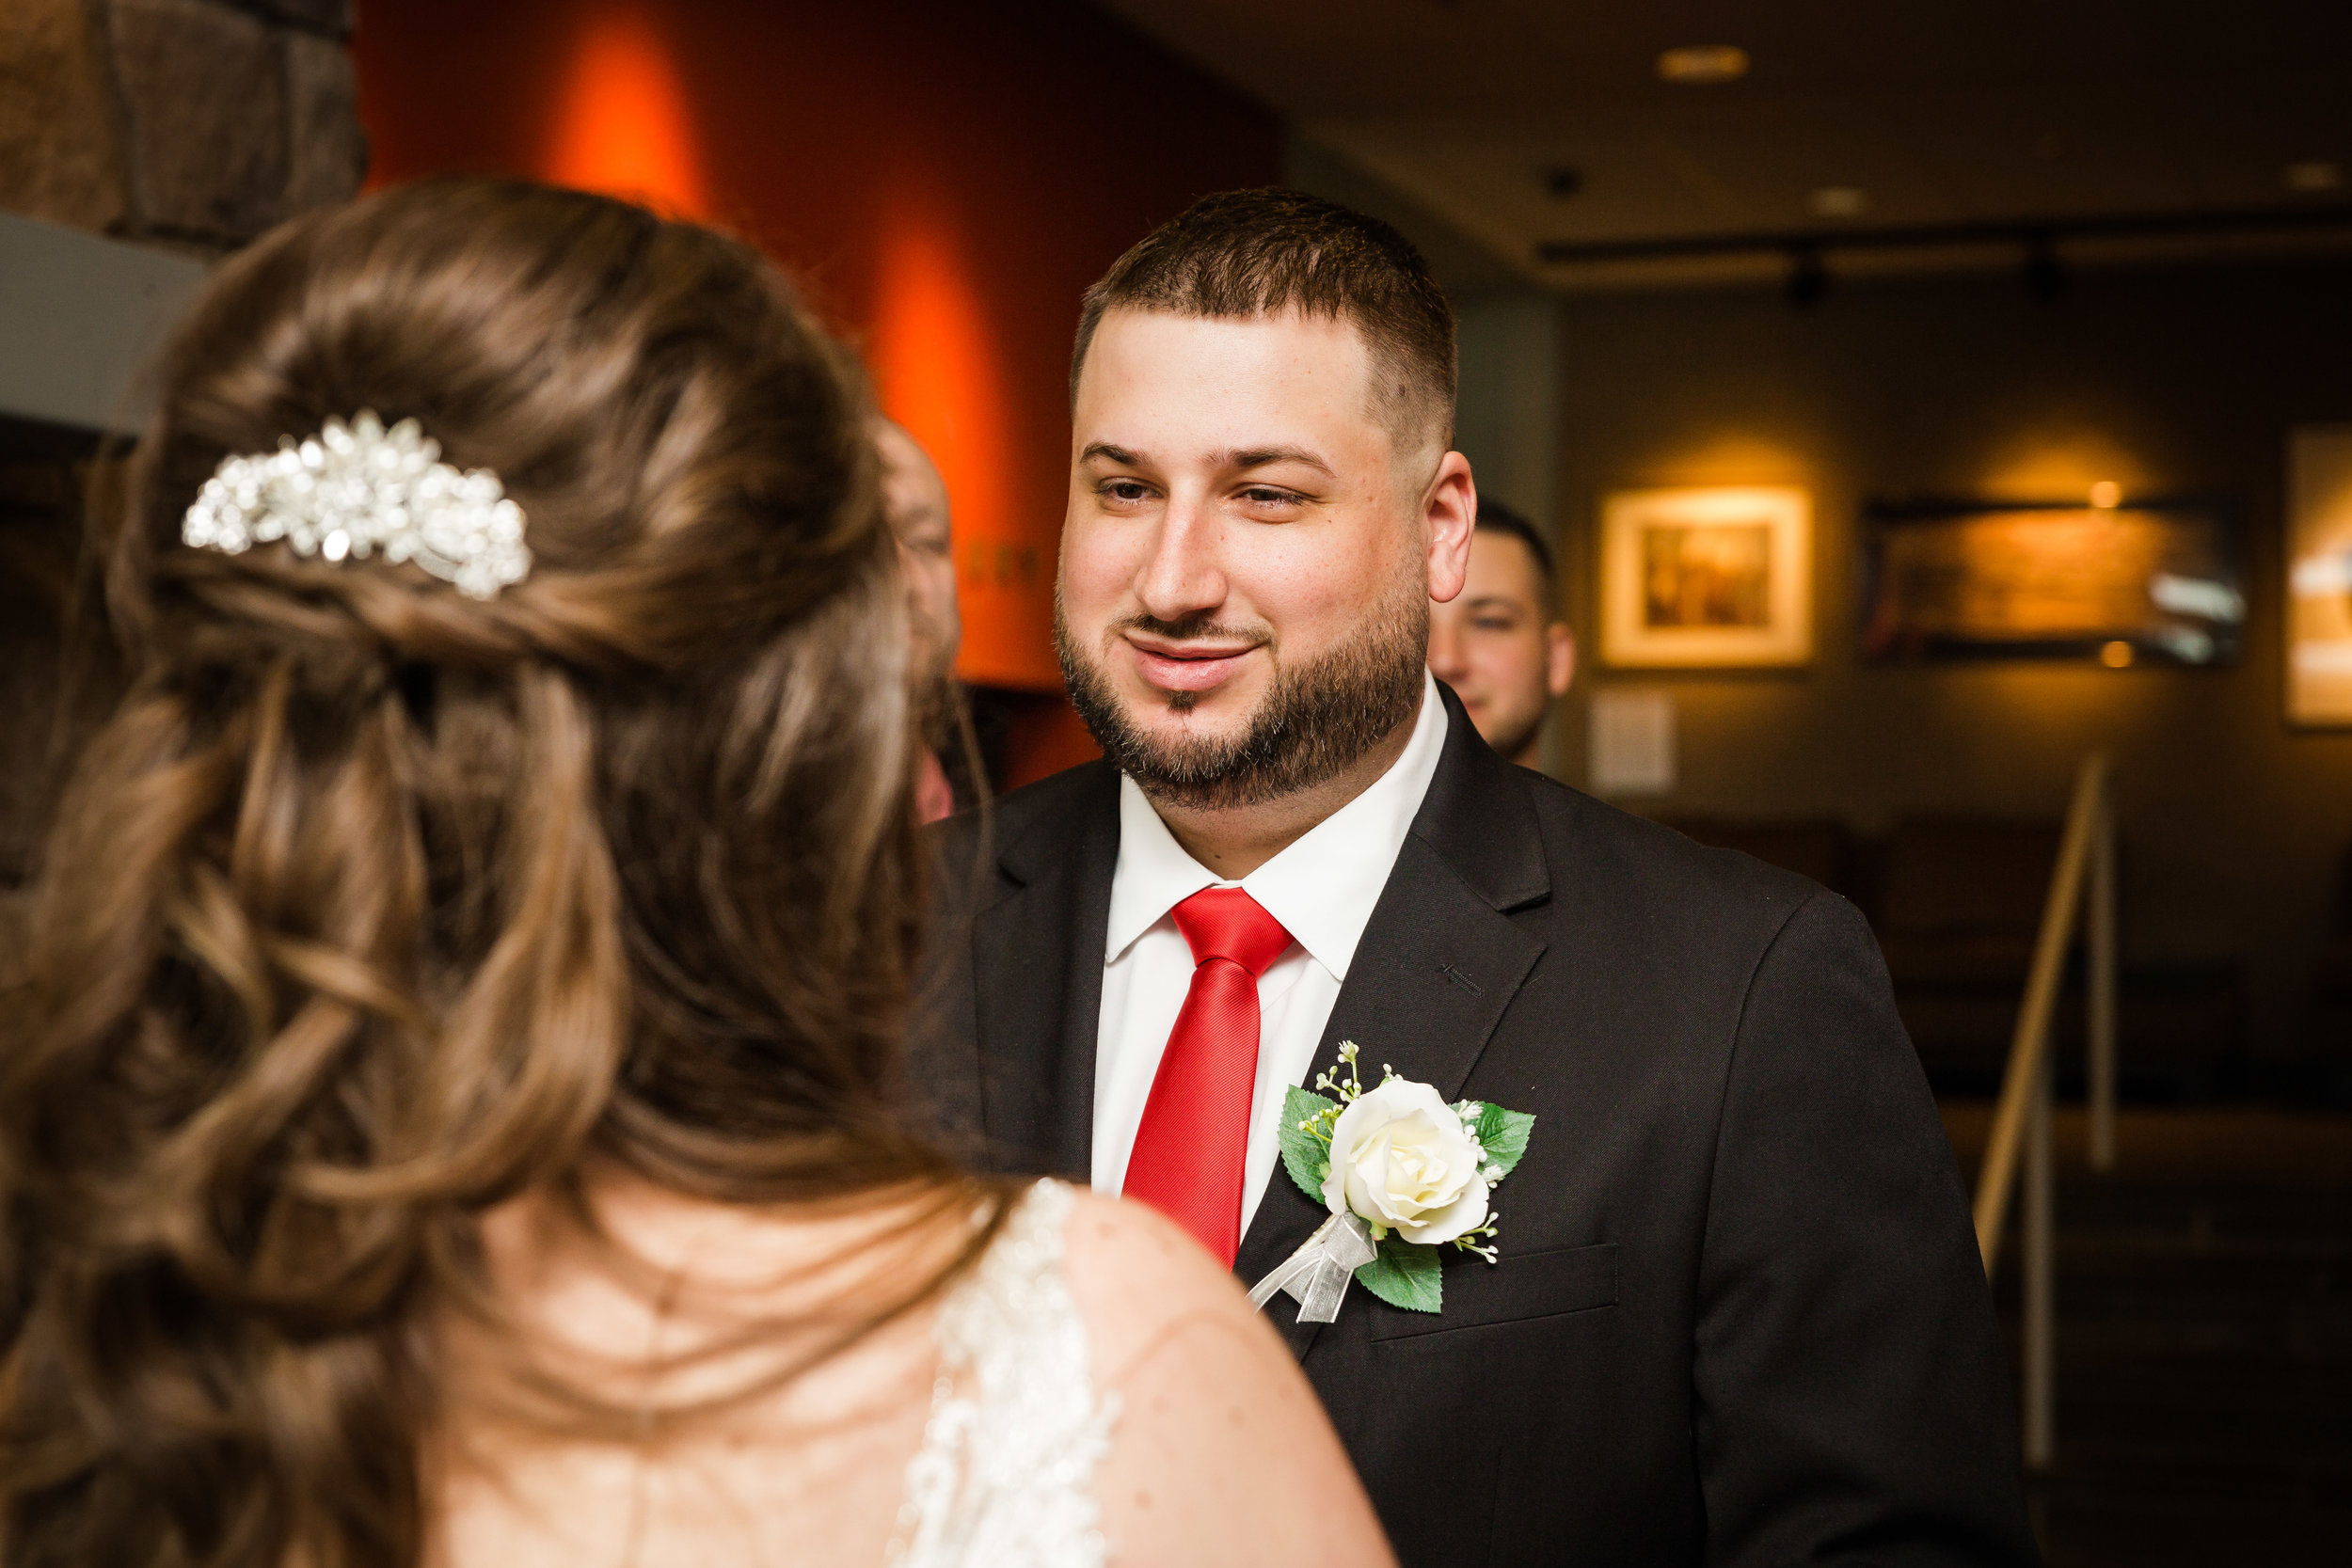 CHAUNCEY HOTEL AND CONFERENCE CENTER WEDDING PHOTOGRAPHY-51.jpg